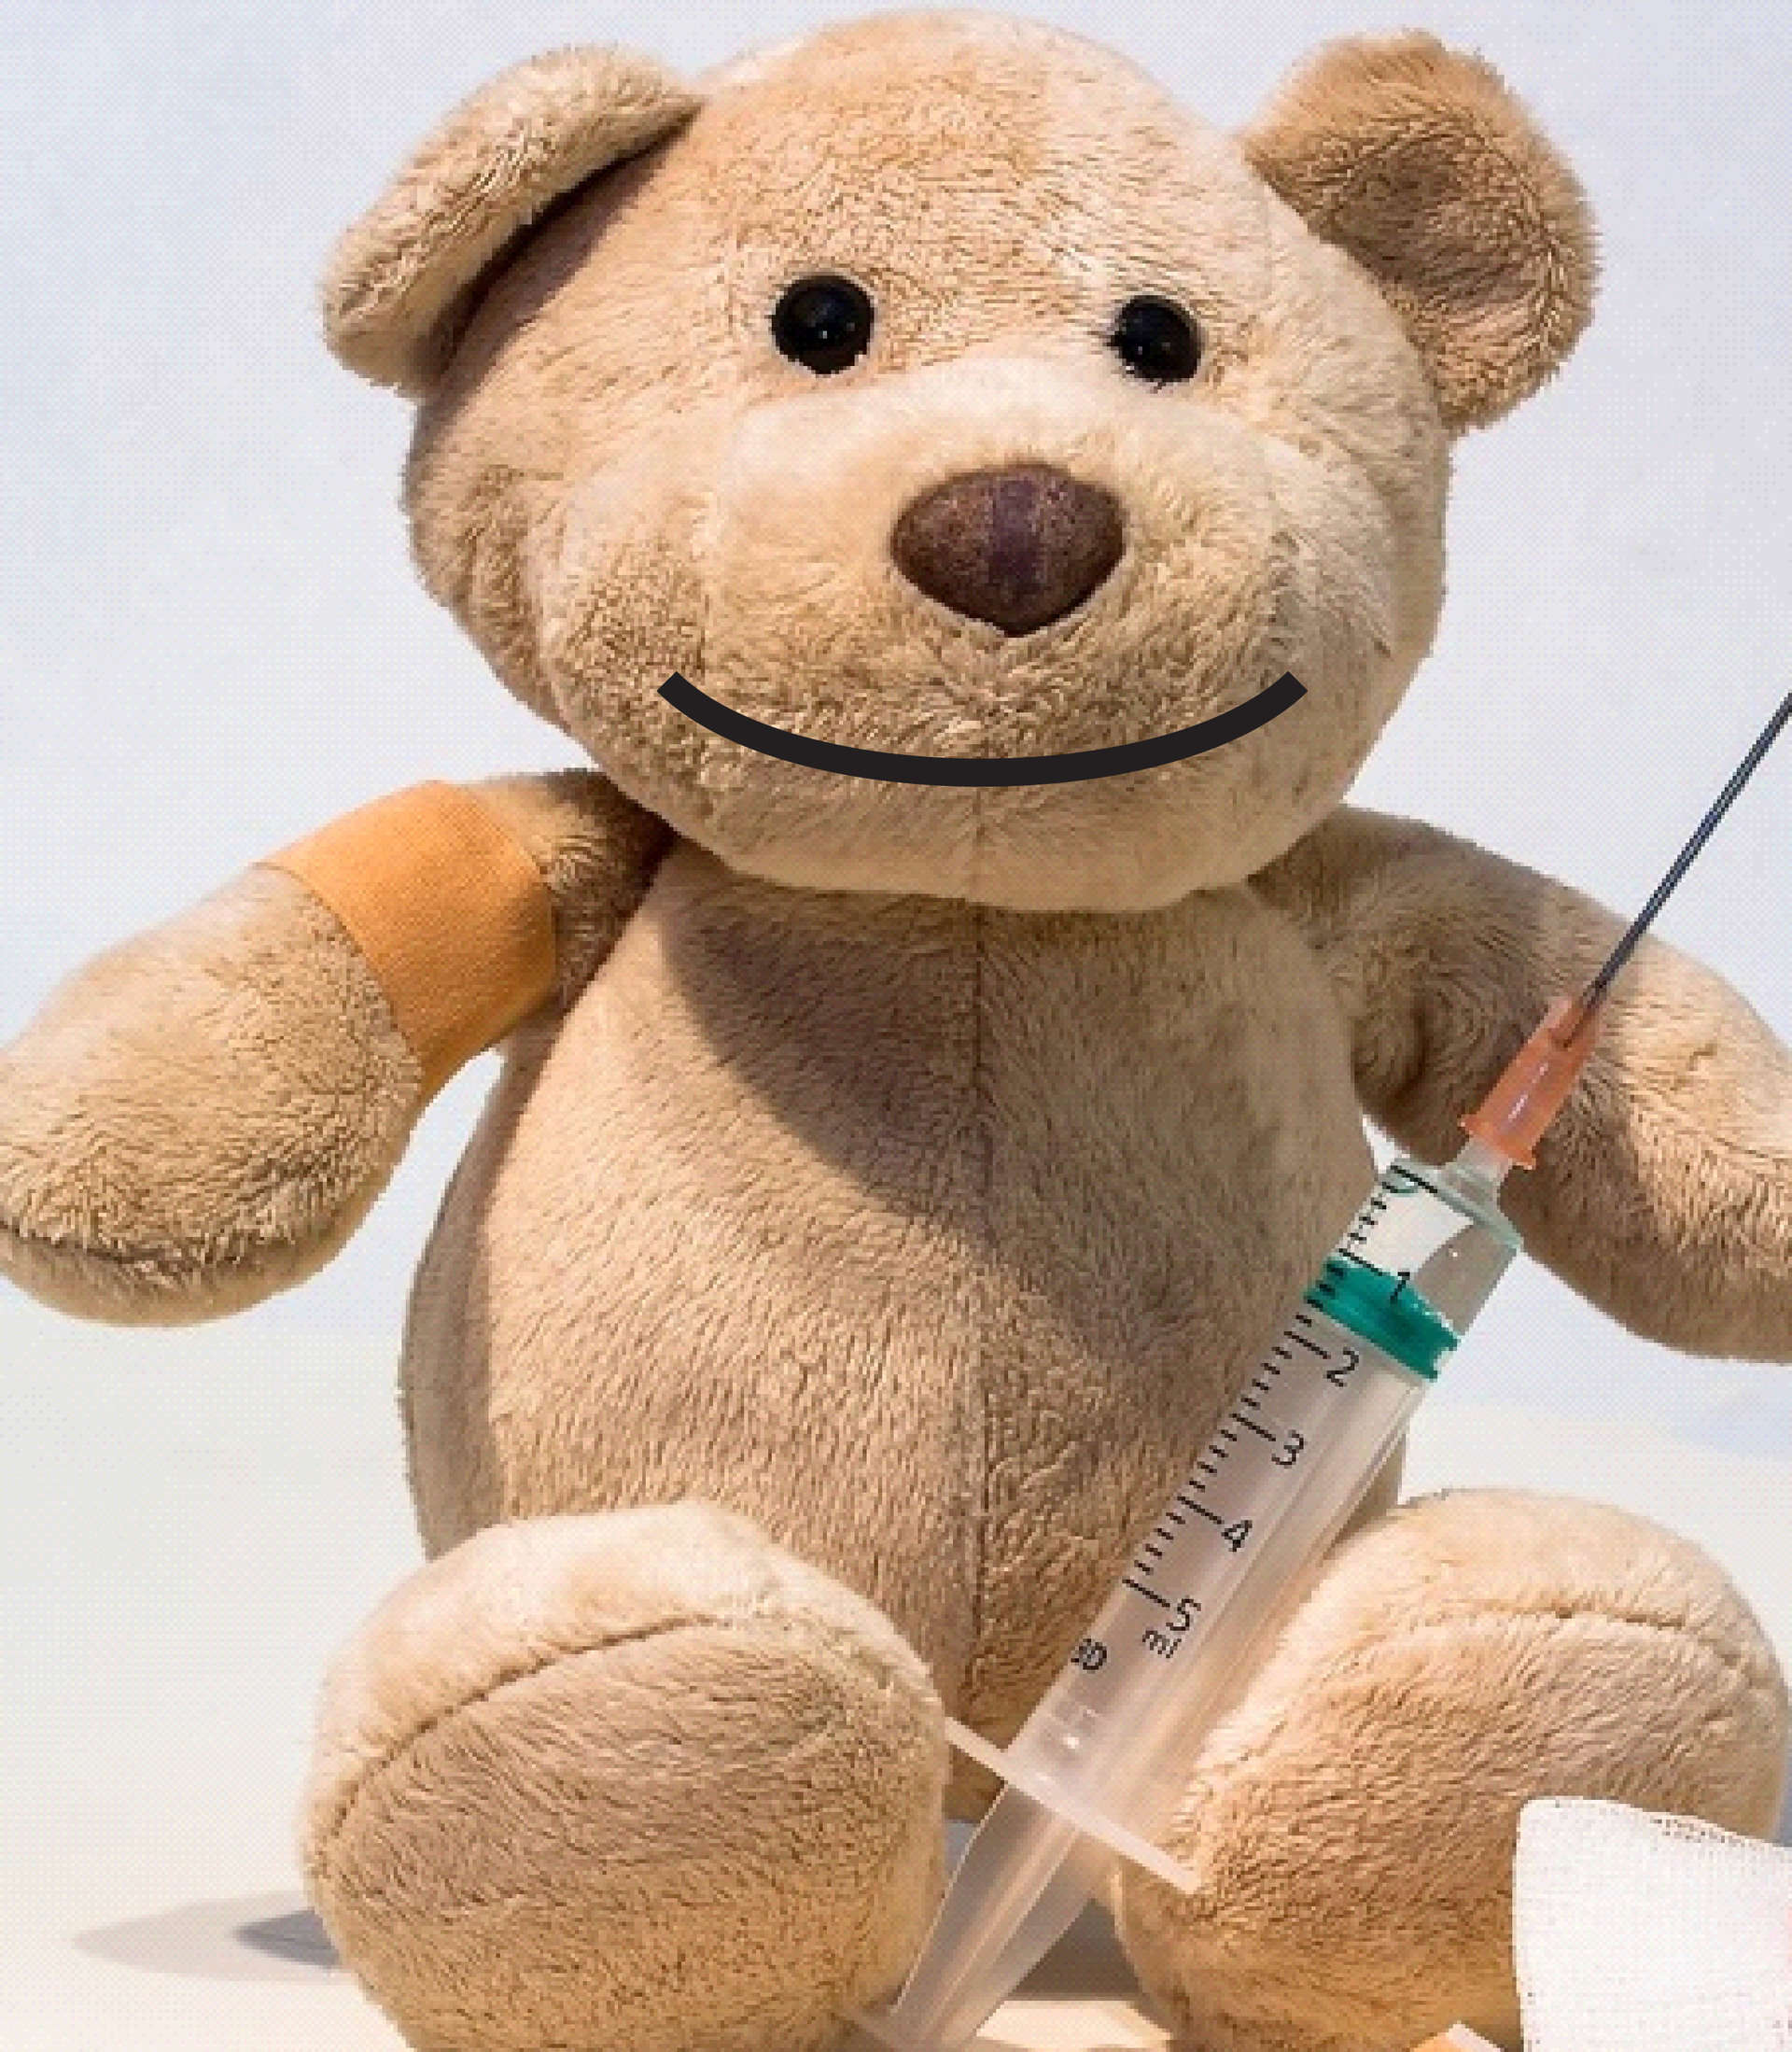 Vaccination teddy